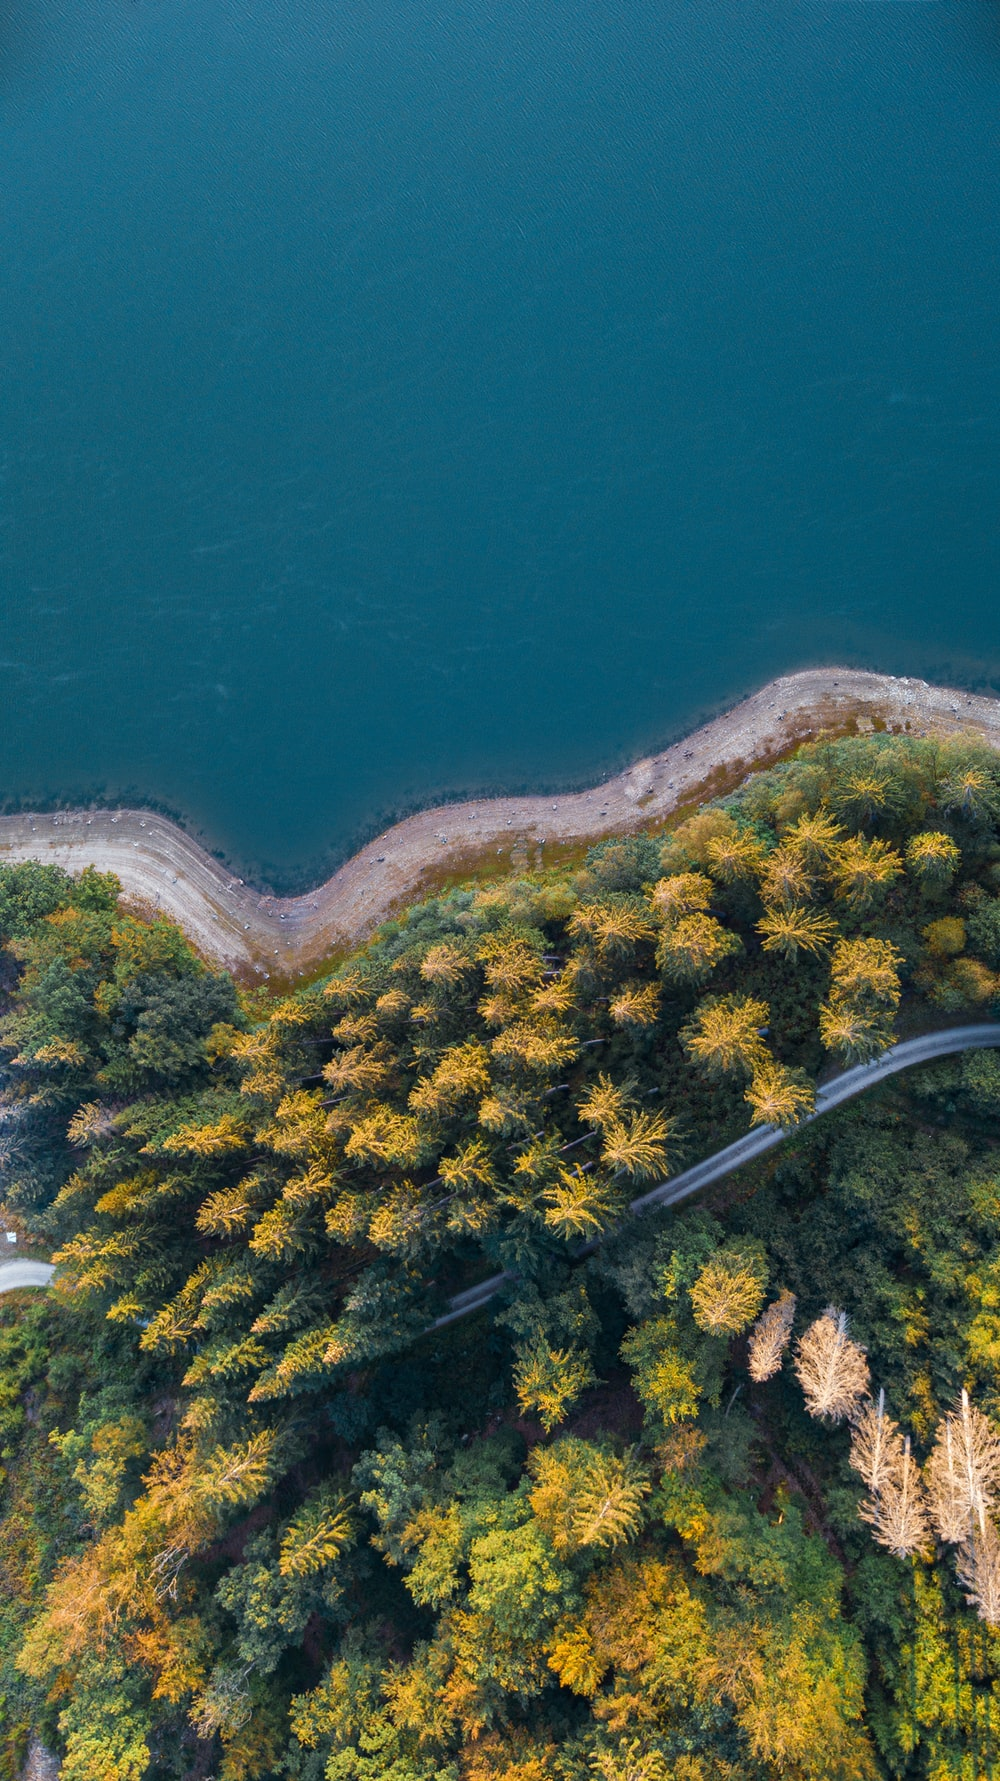 aerial view of green trees and blue sea during daytime